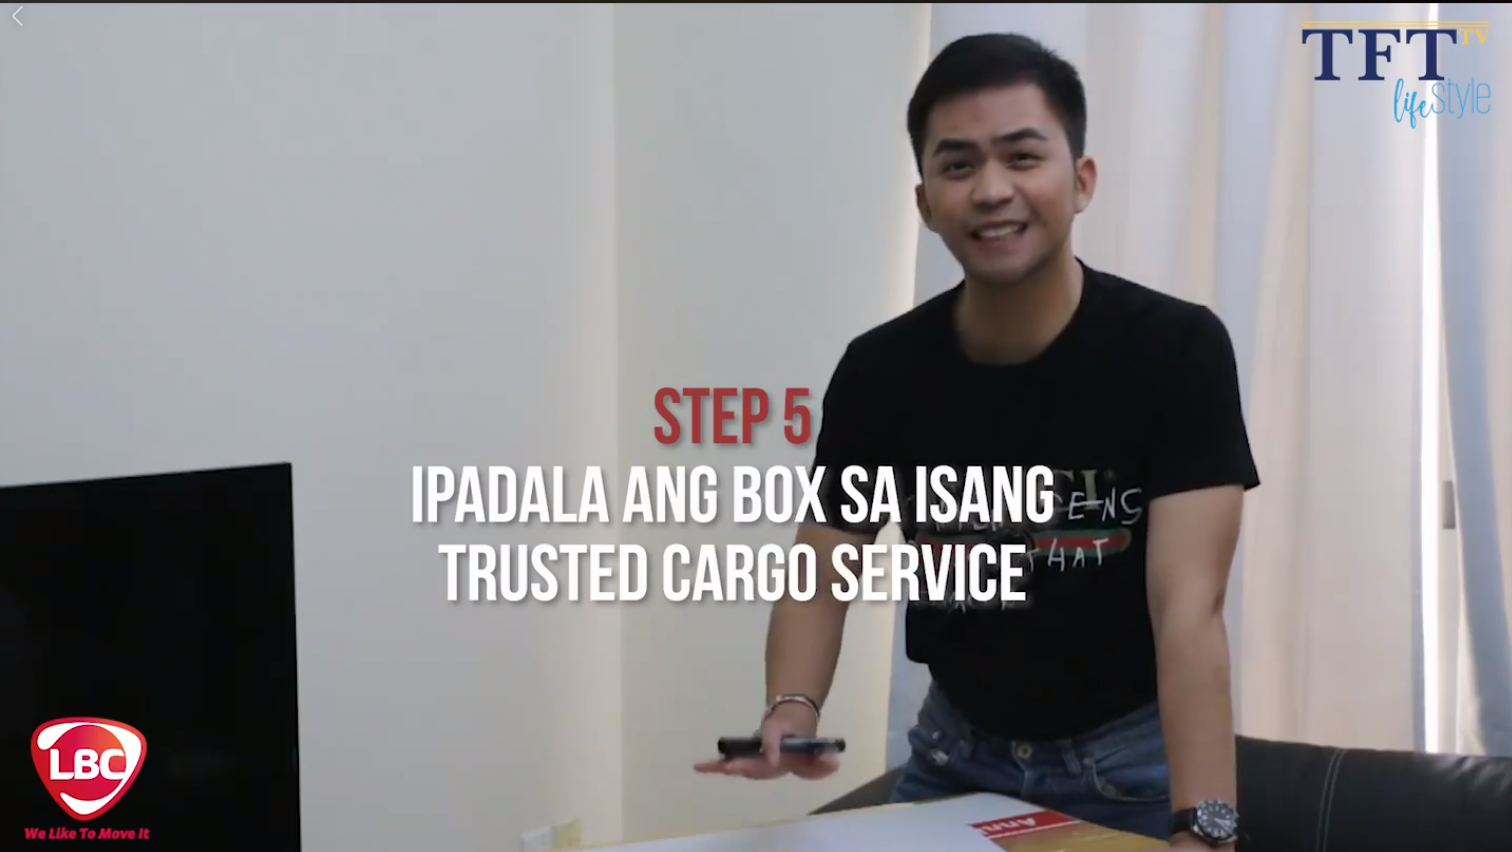 Balikbayan Box 101: A fool proof guide to send your